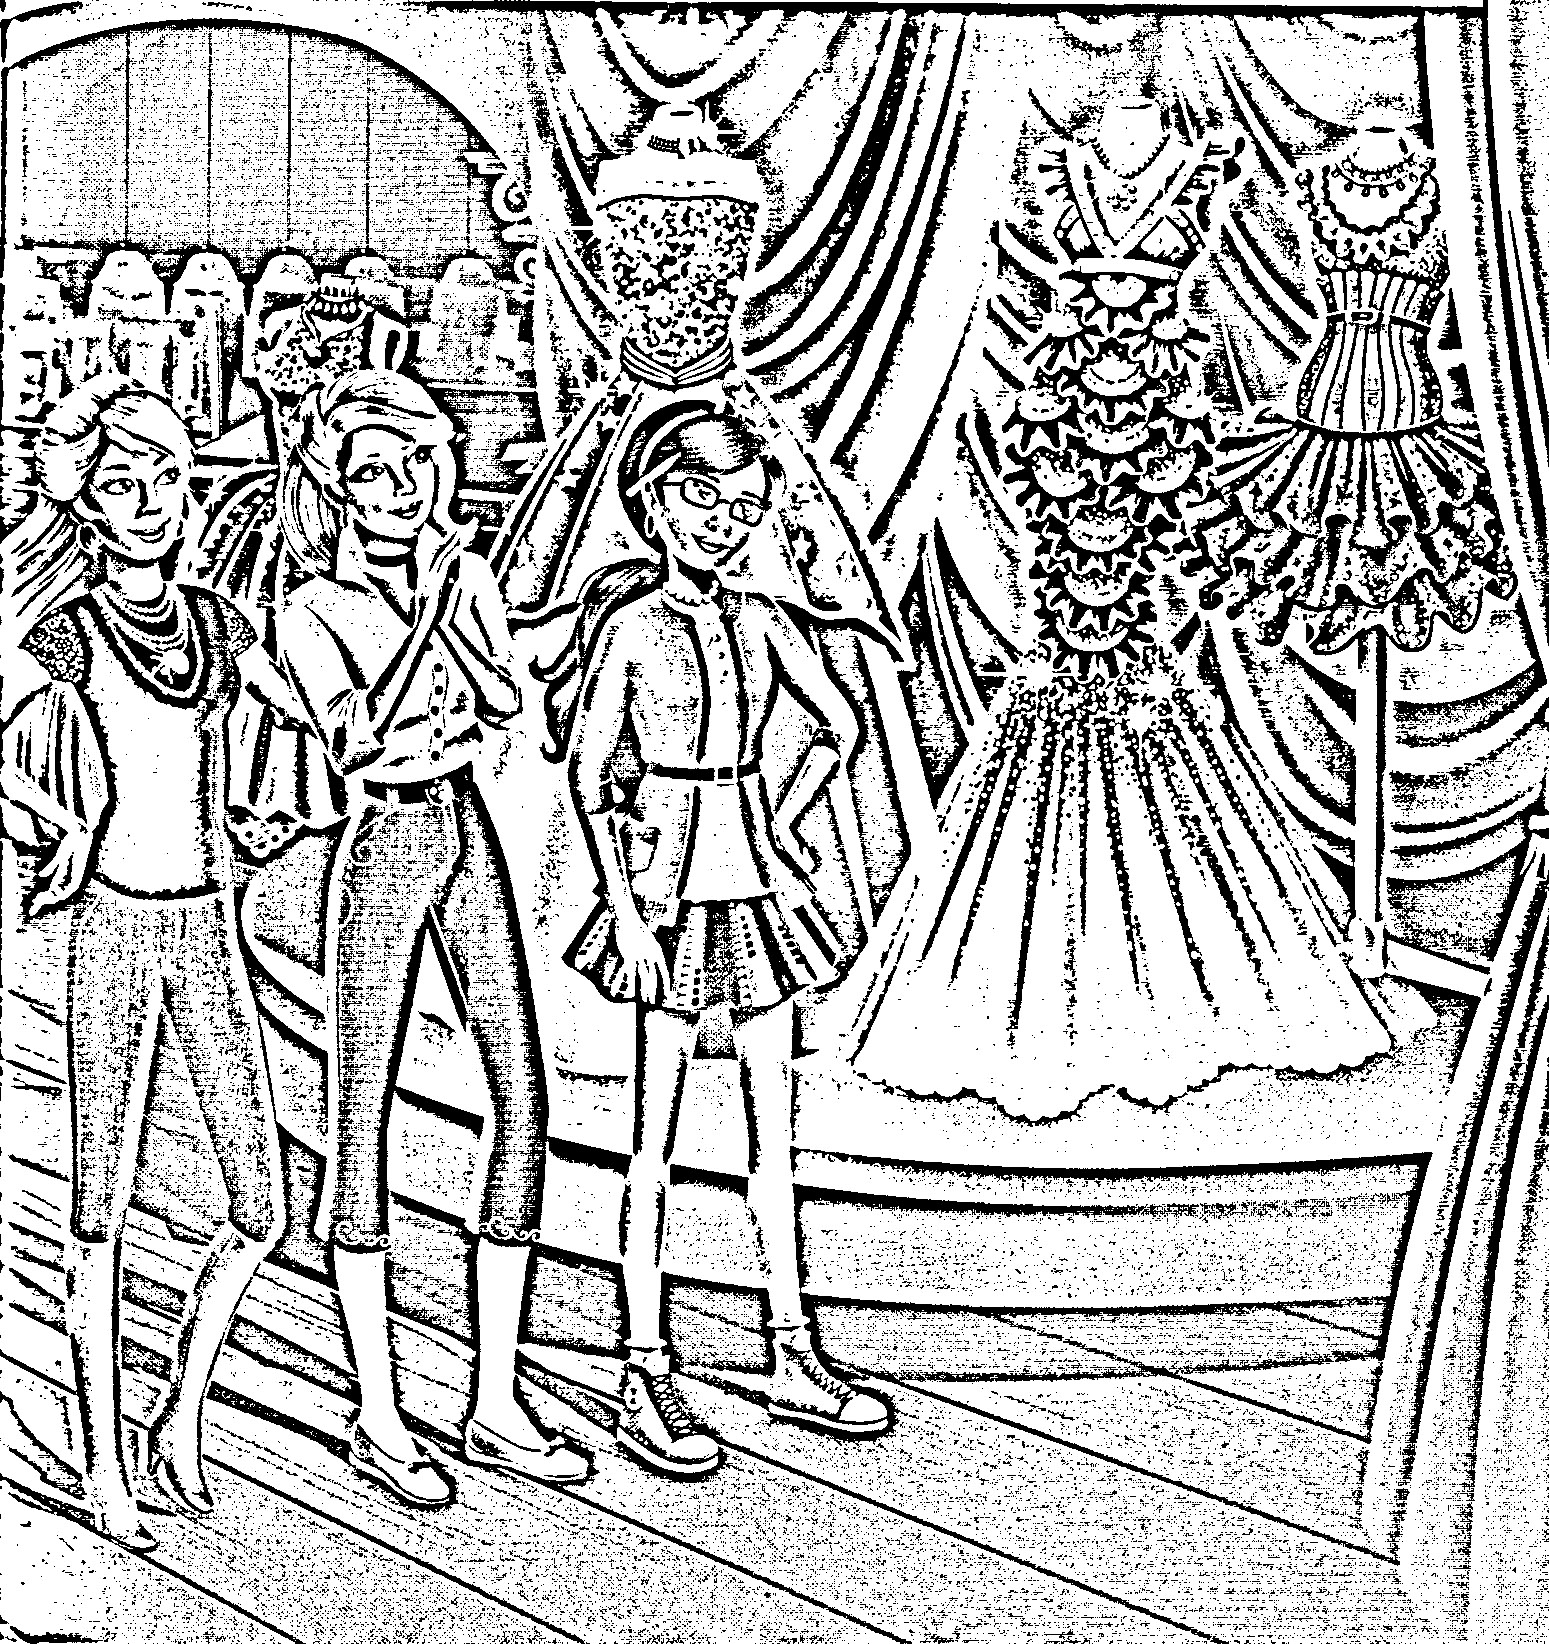 Barbie in a Fashion Fairytale Colouring Pictures 3